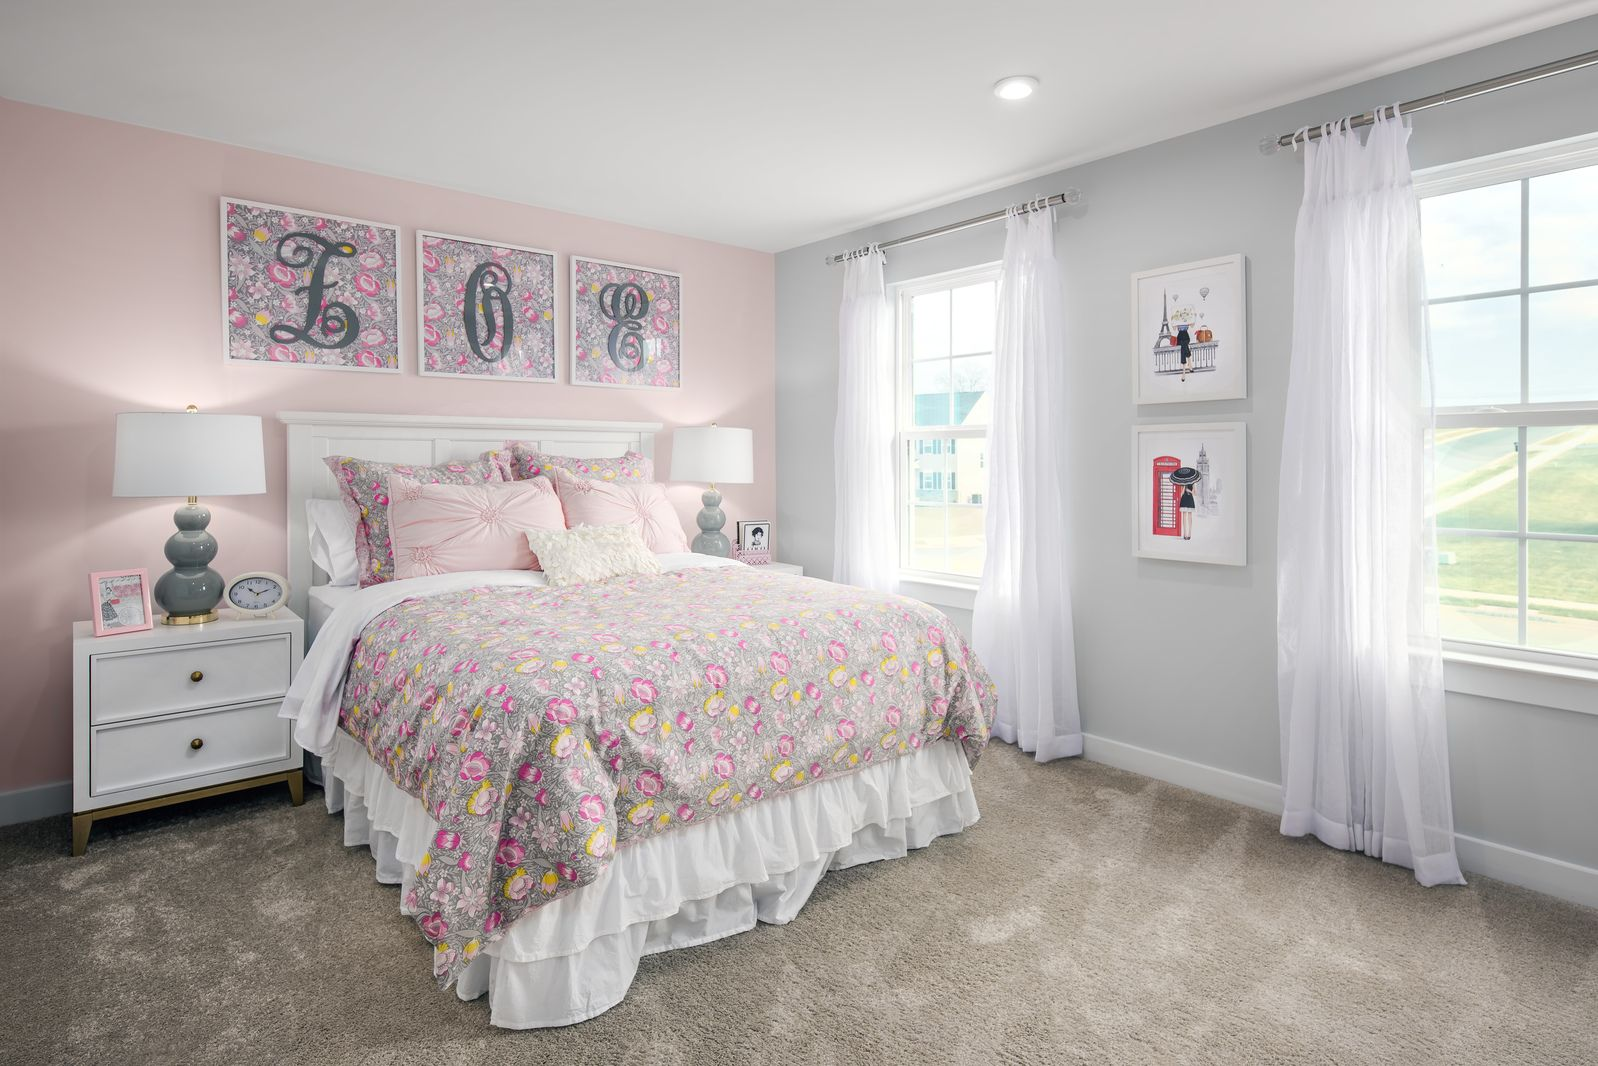 Bedroom featured in the Saint Lawrence By Ryan Homes in Washington, MD